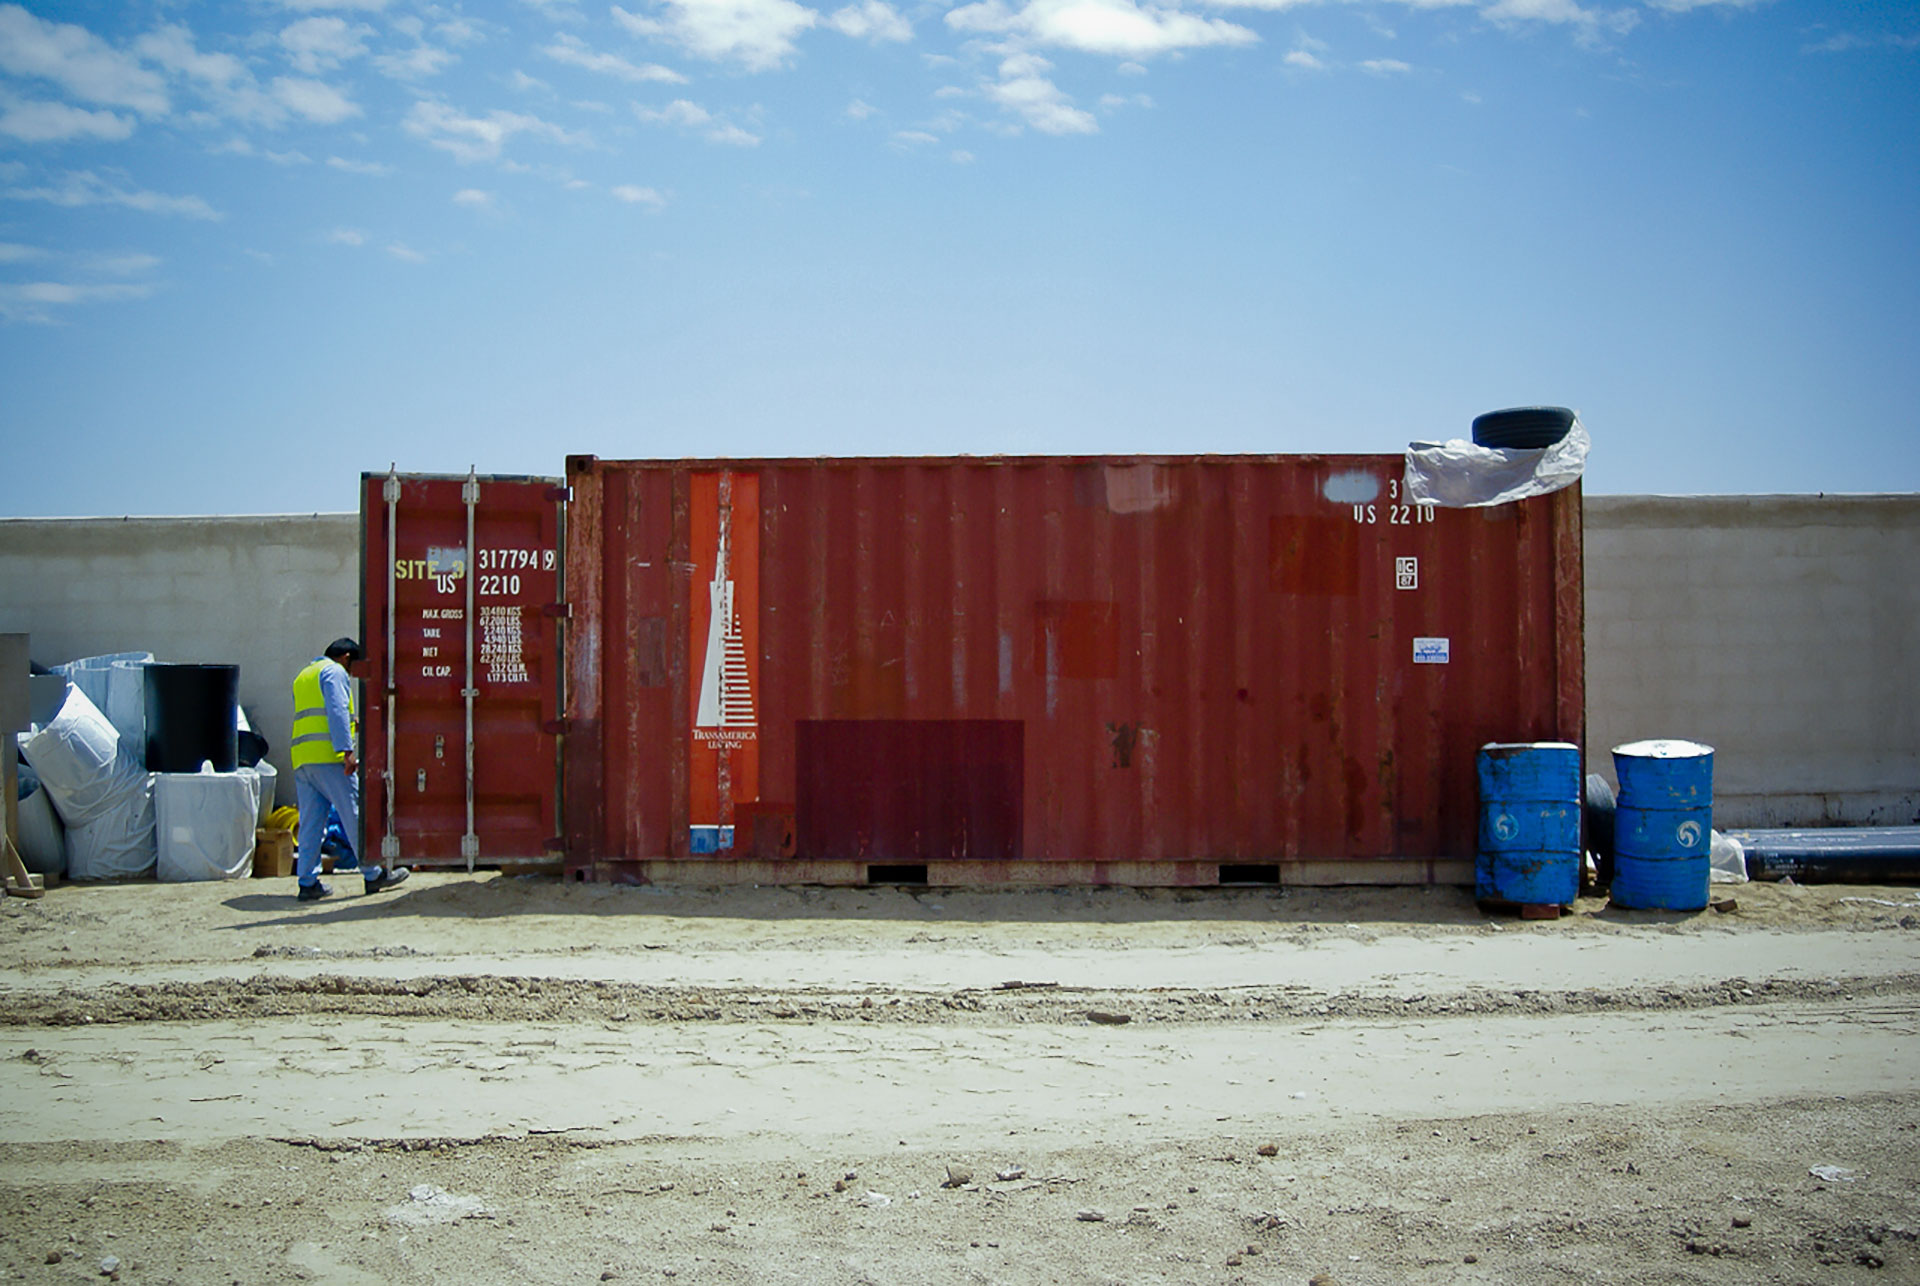 A construction worker next to a red shipping container.